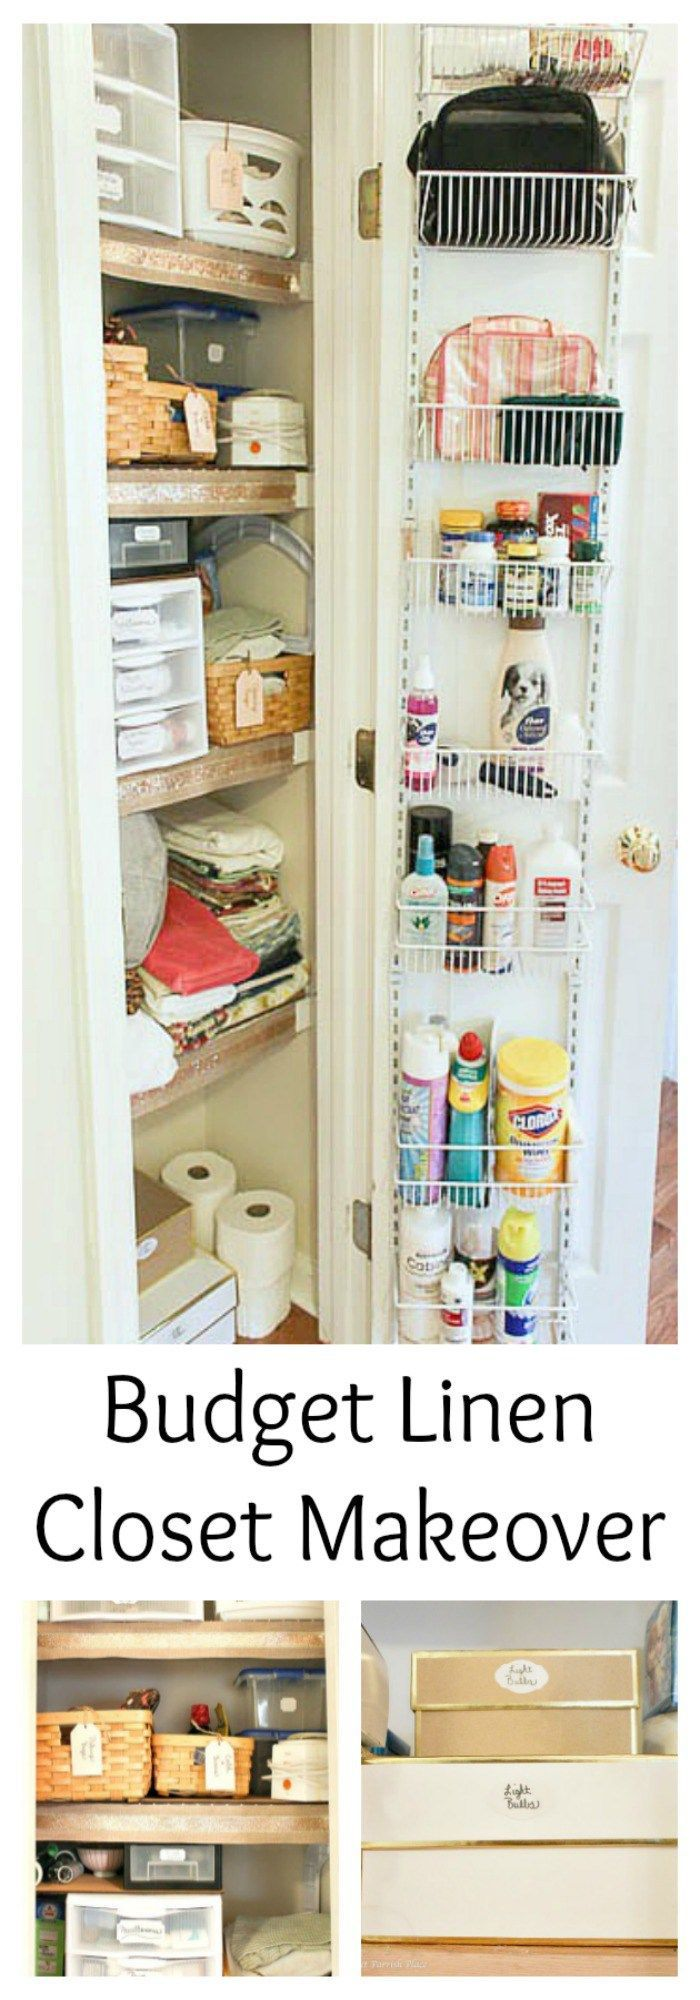 280 best images about home linen closet on pinterest for Organizing ideas for closets